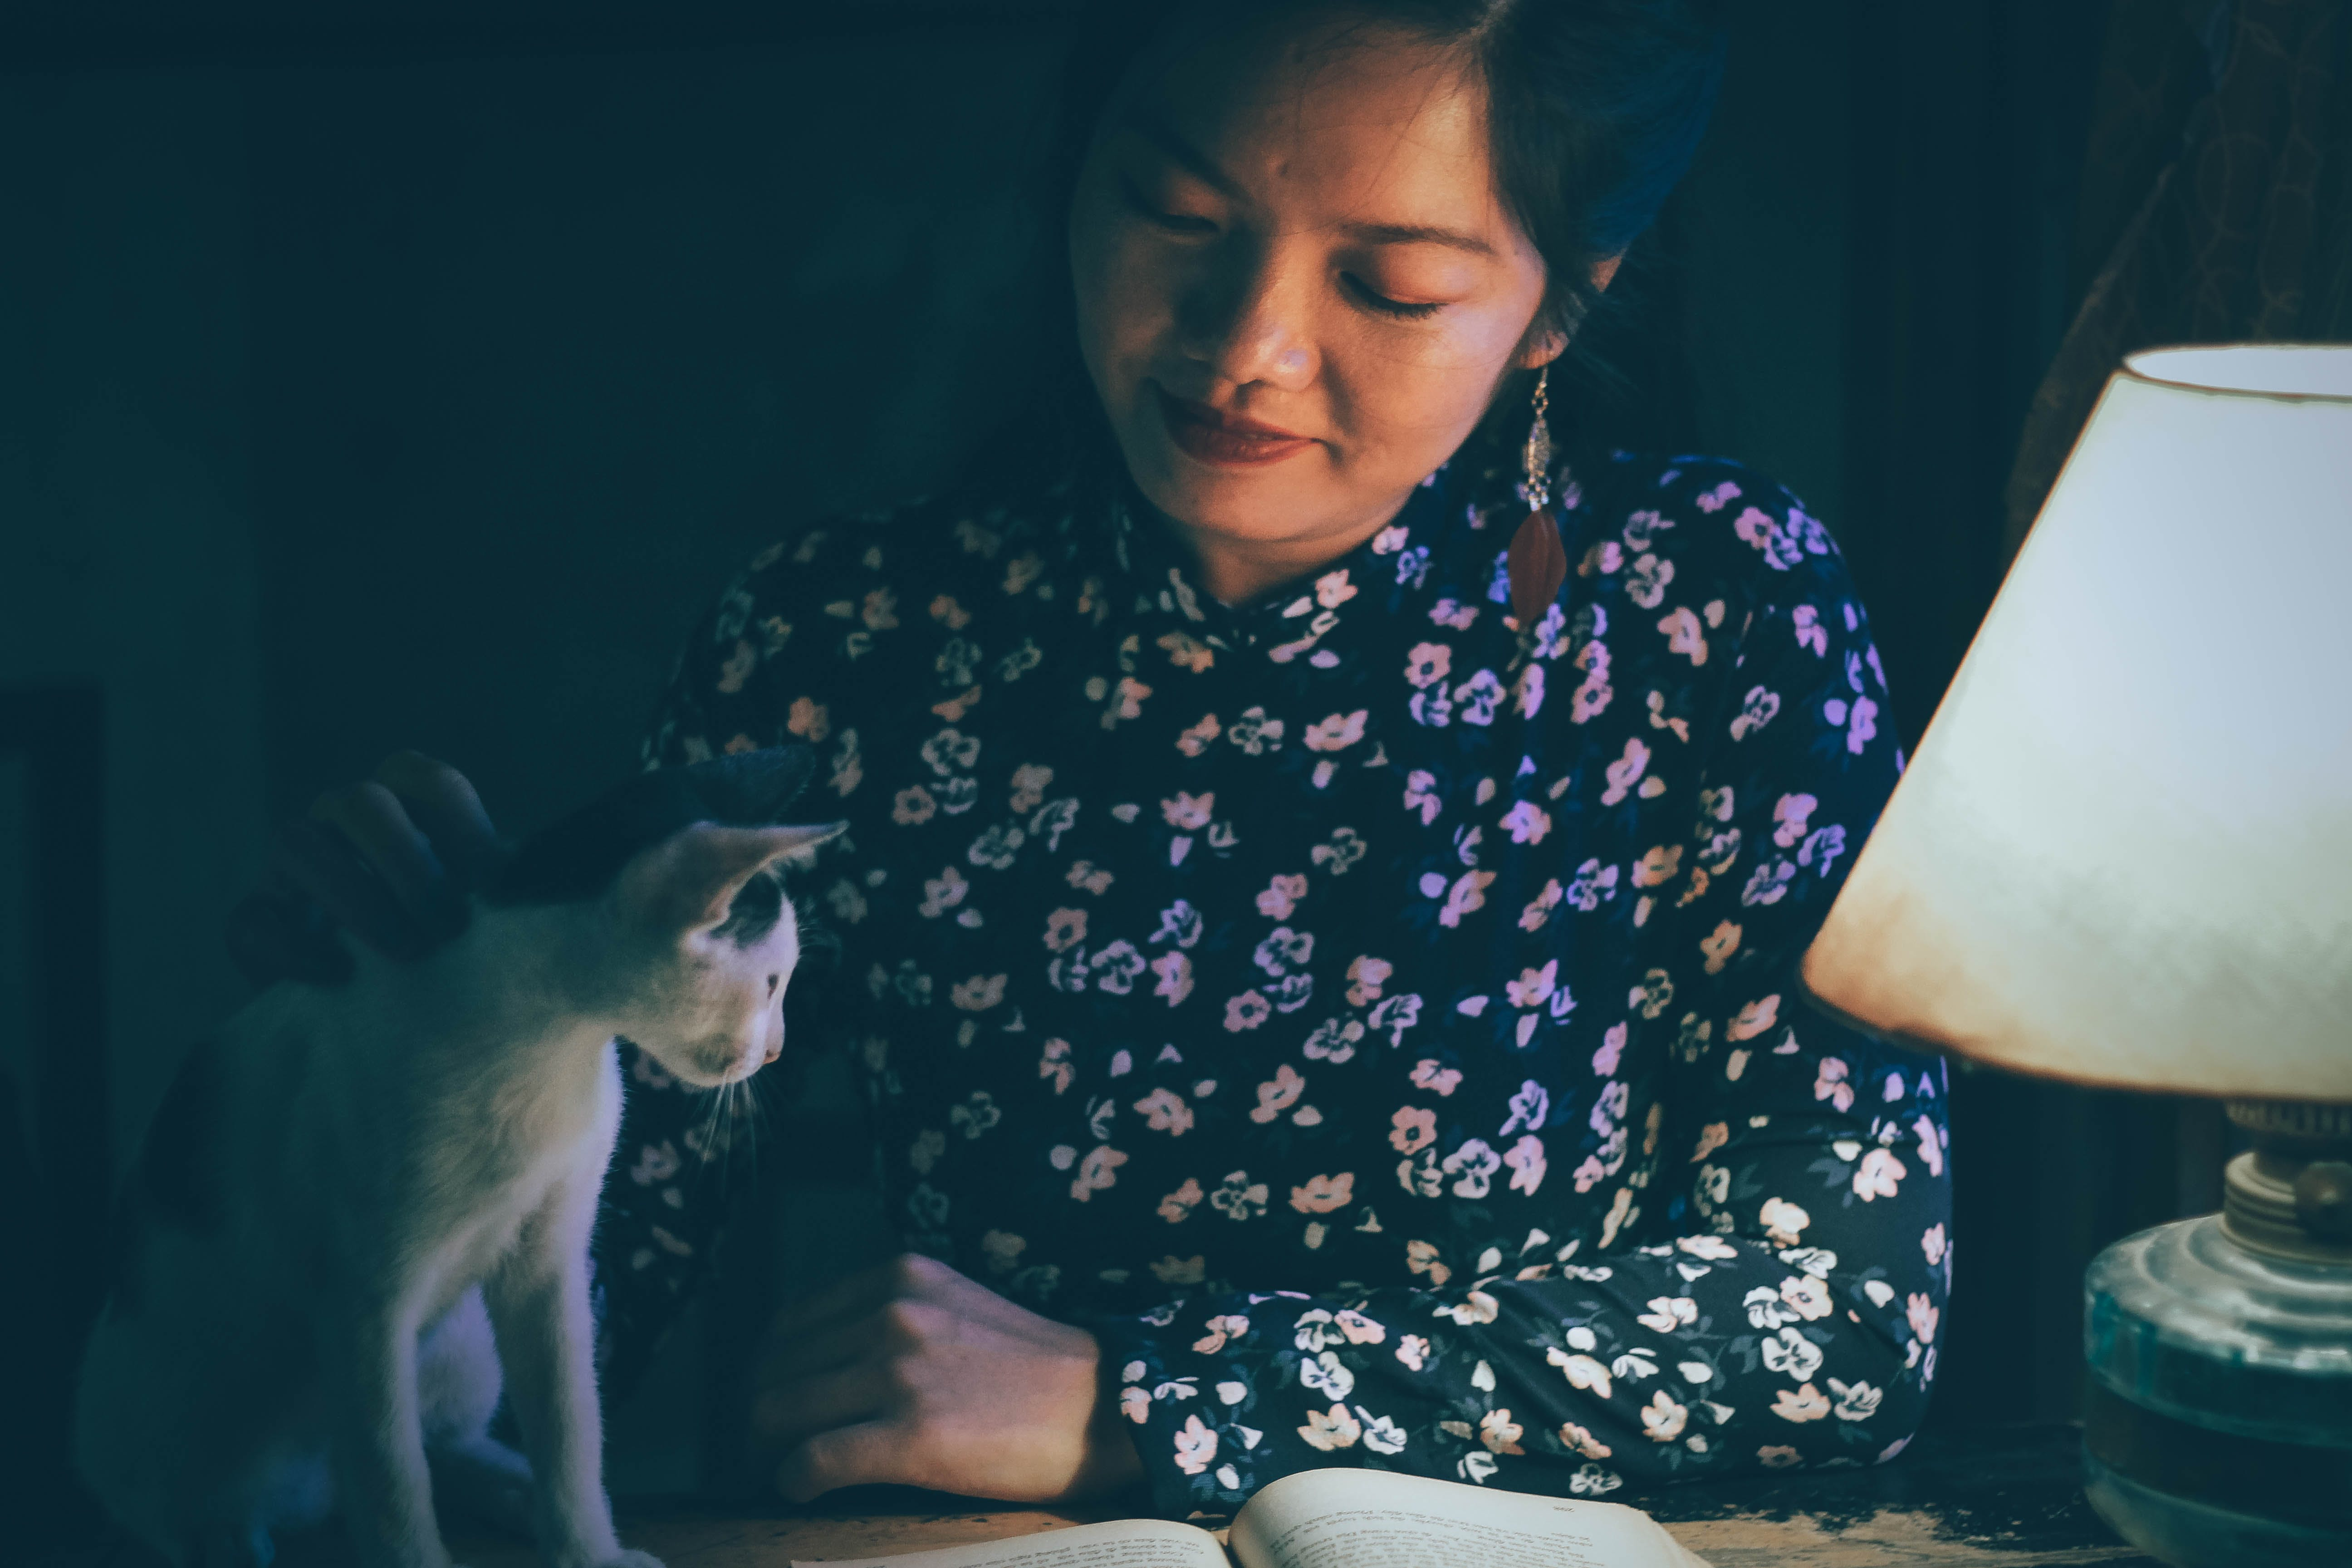 Woman Caressing a Cat While Reading Book Lighted by a Table Lamp in Dark